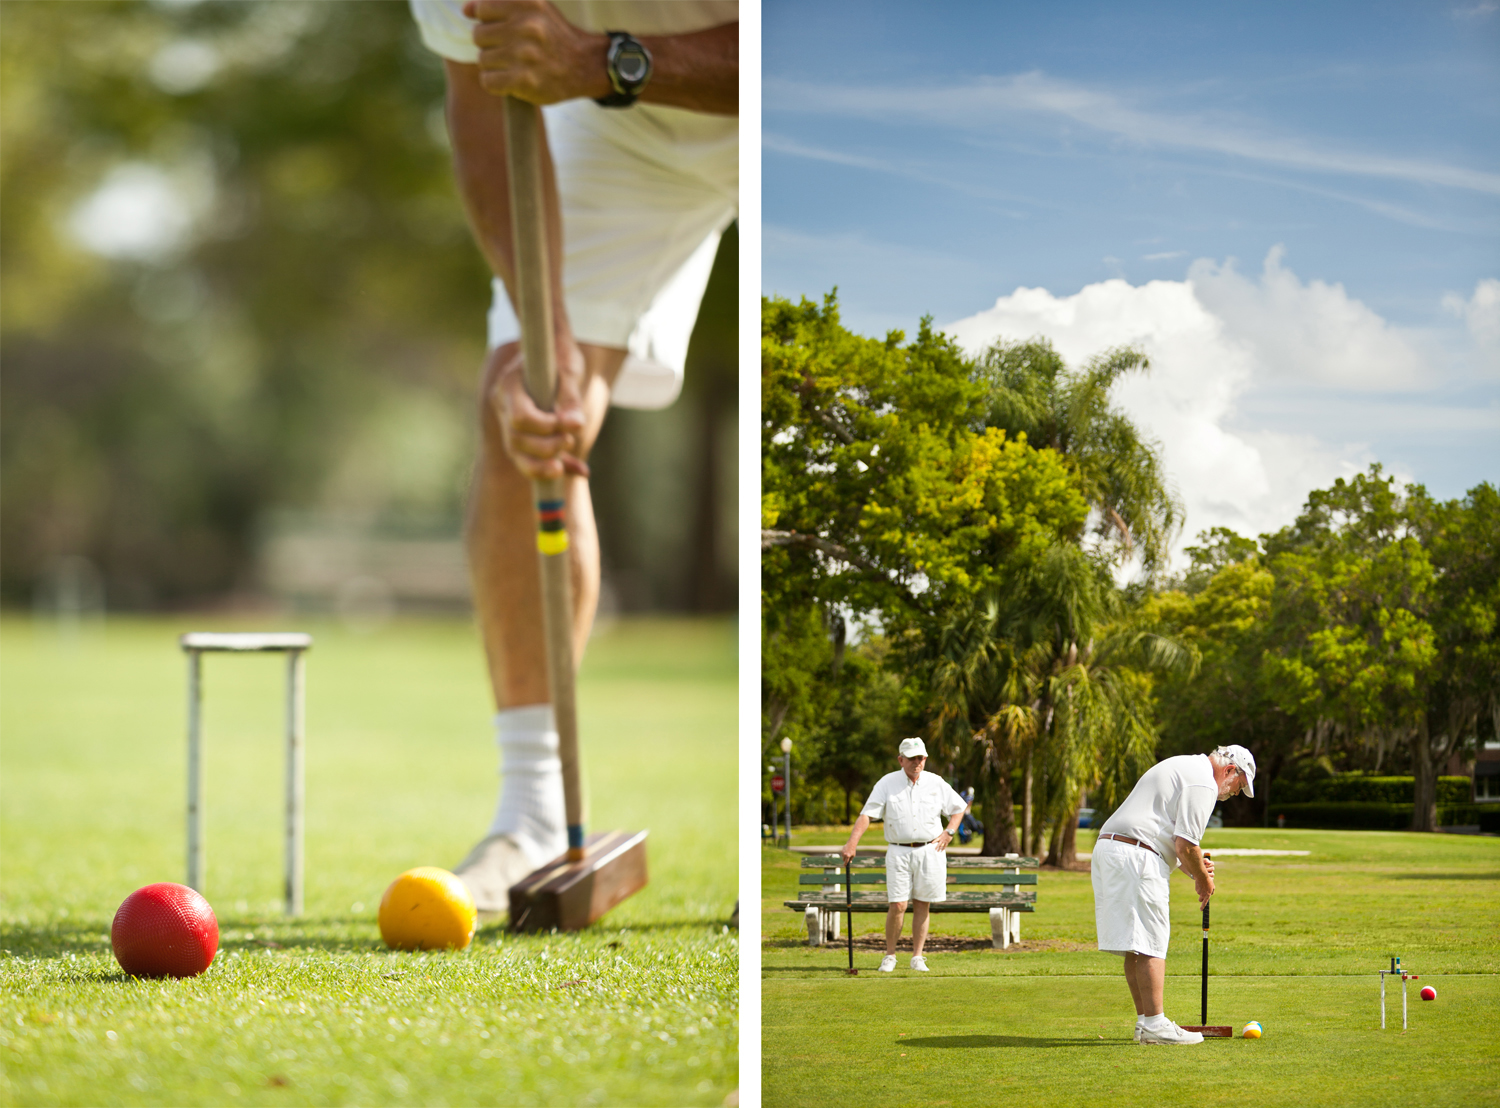 Copy of winter park croquet travel photographer